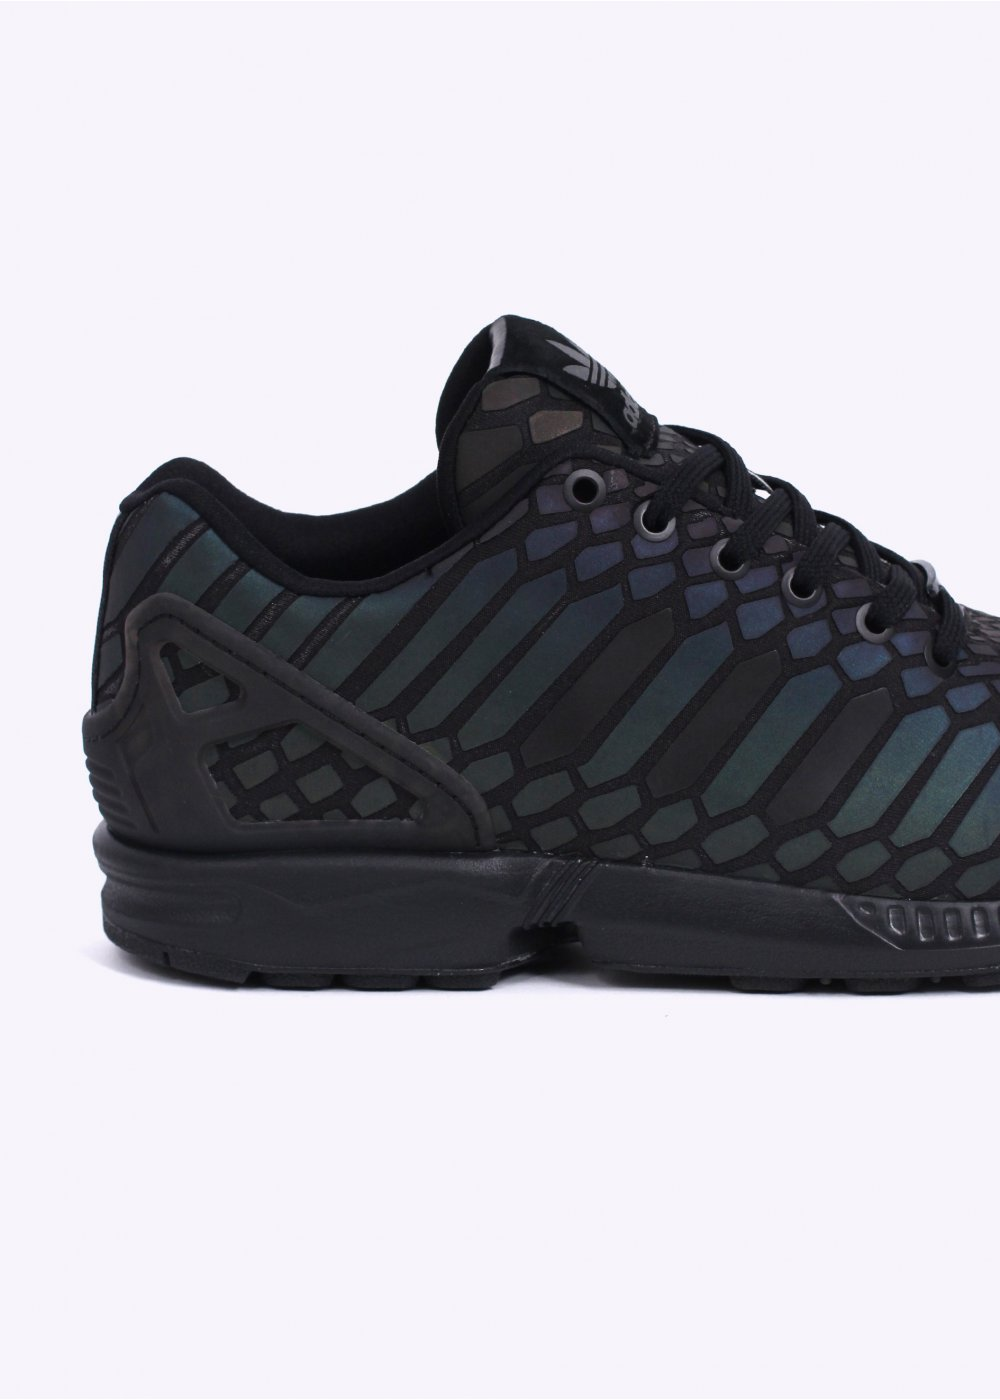 quality design 225f9 35548 adidas Originals Footwear ZX Flux Xeno - Black / Reflective